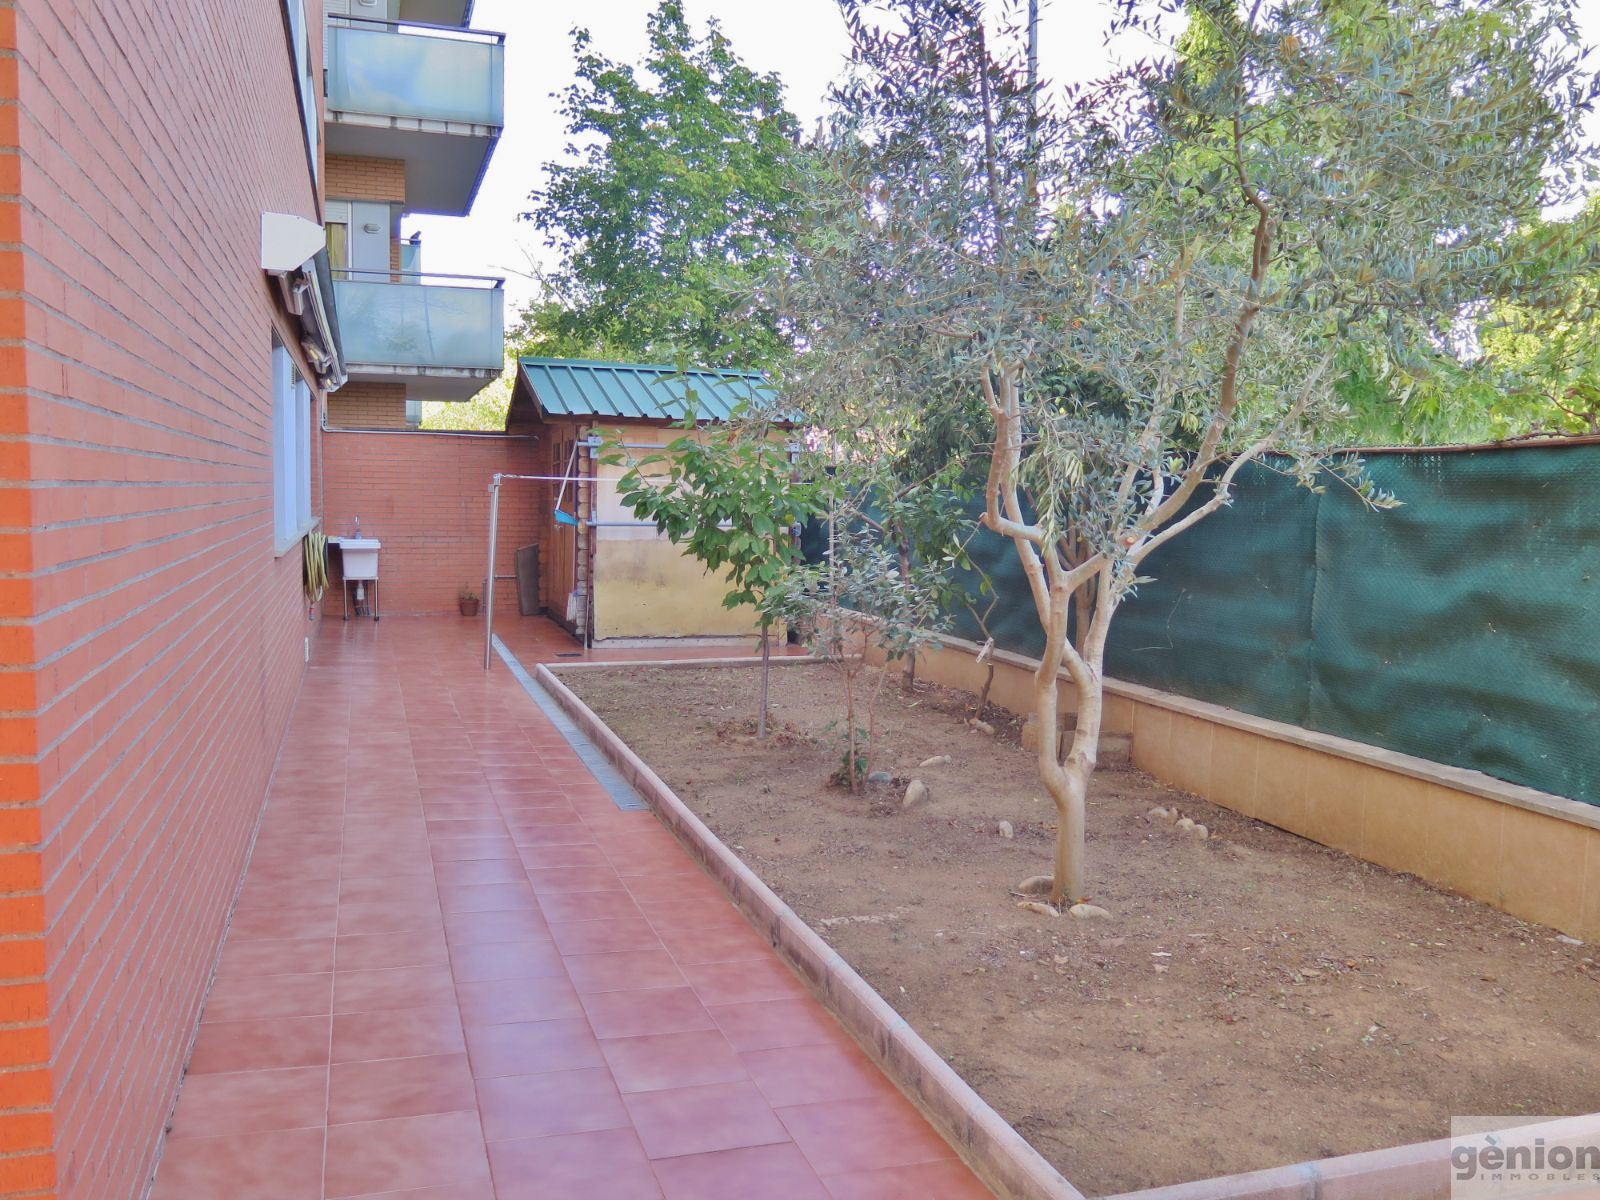 GROUND-FLOOR APARTMENT WITH PATIO IN DOMENY, GIRONA. PARKING SPACE AND COMMUNITY AREA